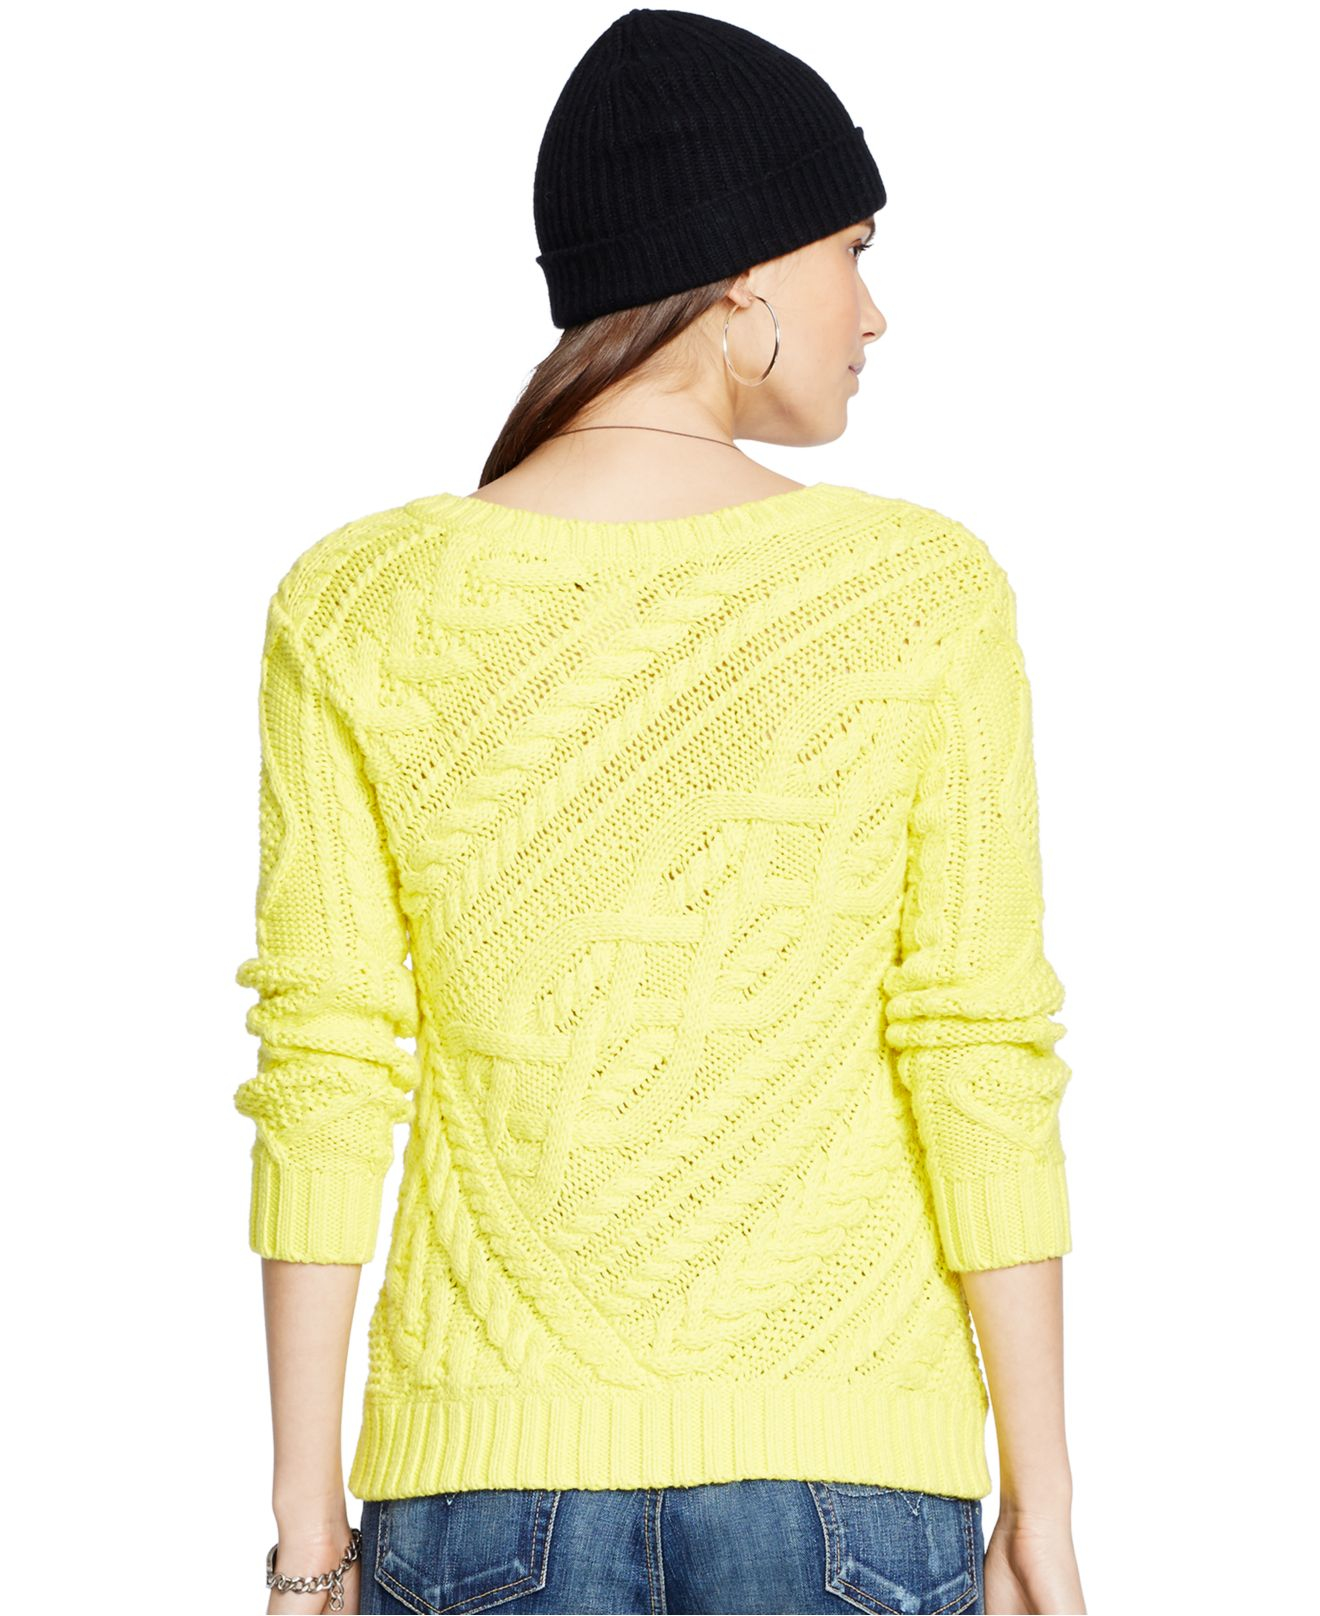 666b29a6cd Previously sold at Macys · Womens Cable Knit Sweaters  authentic 26544  82715 Polo Ralph Lauren ...